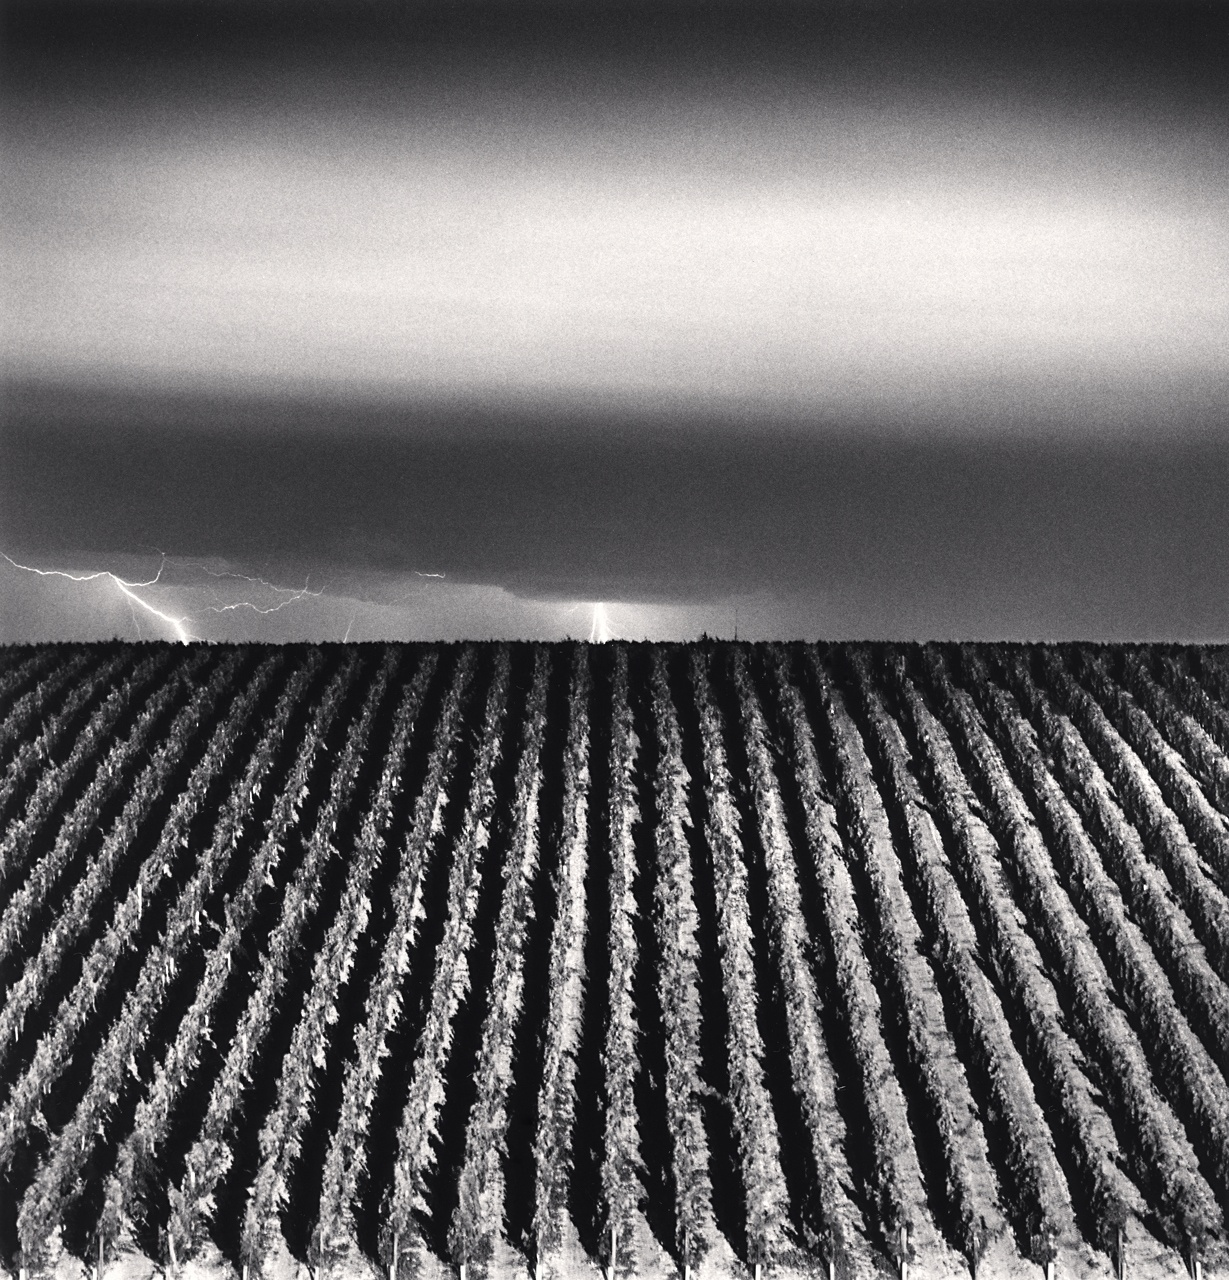 Michael Kenna  Chateau Lafite Rothschild, Study 6, Bordeaux, France 2012